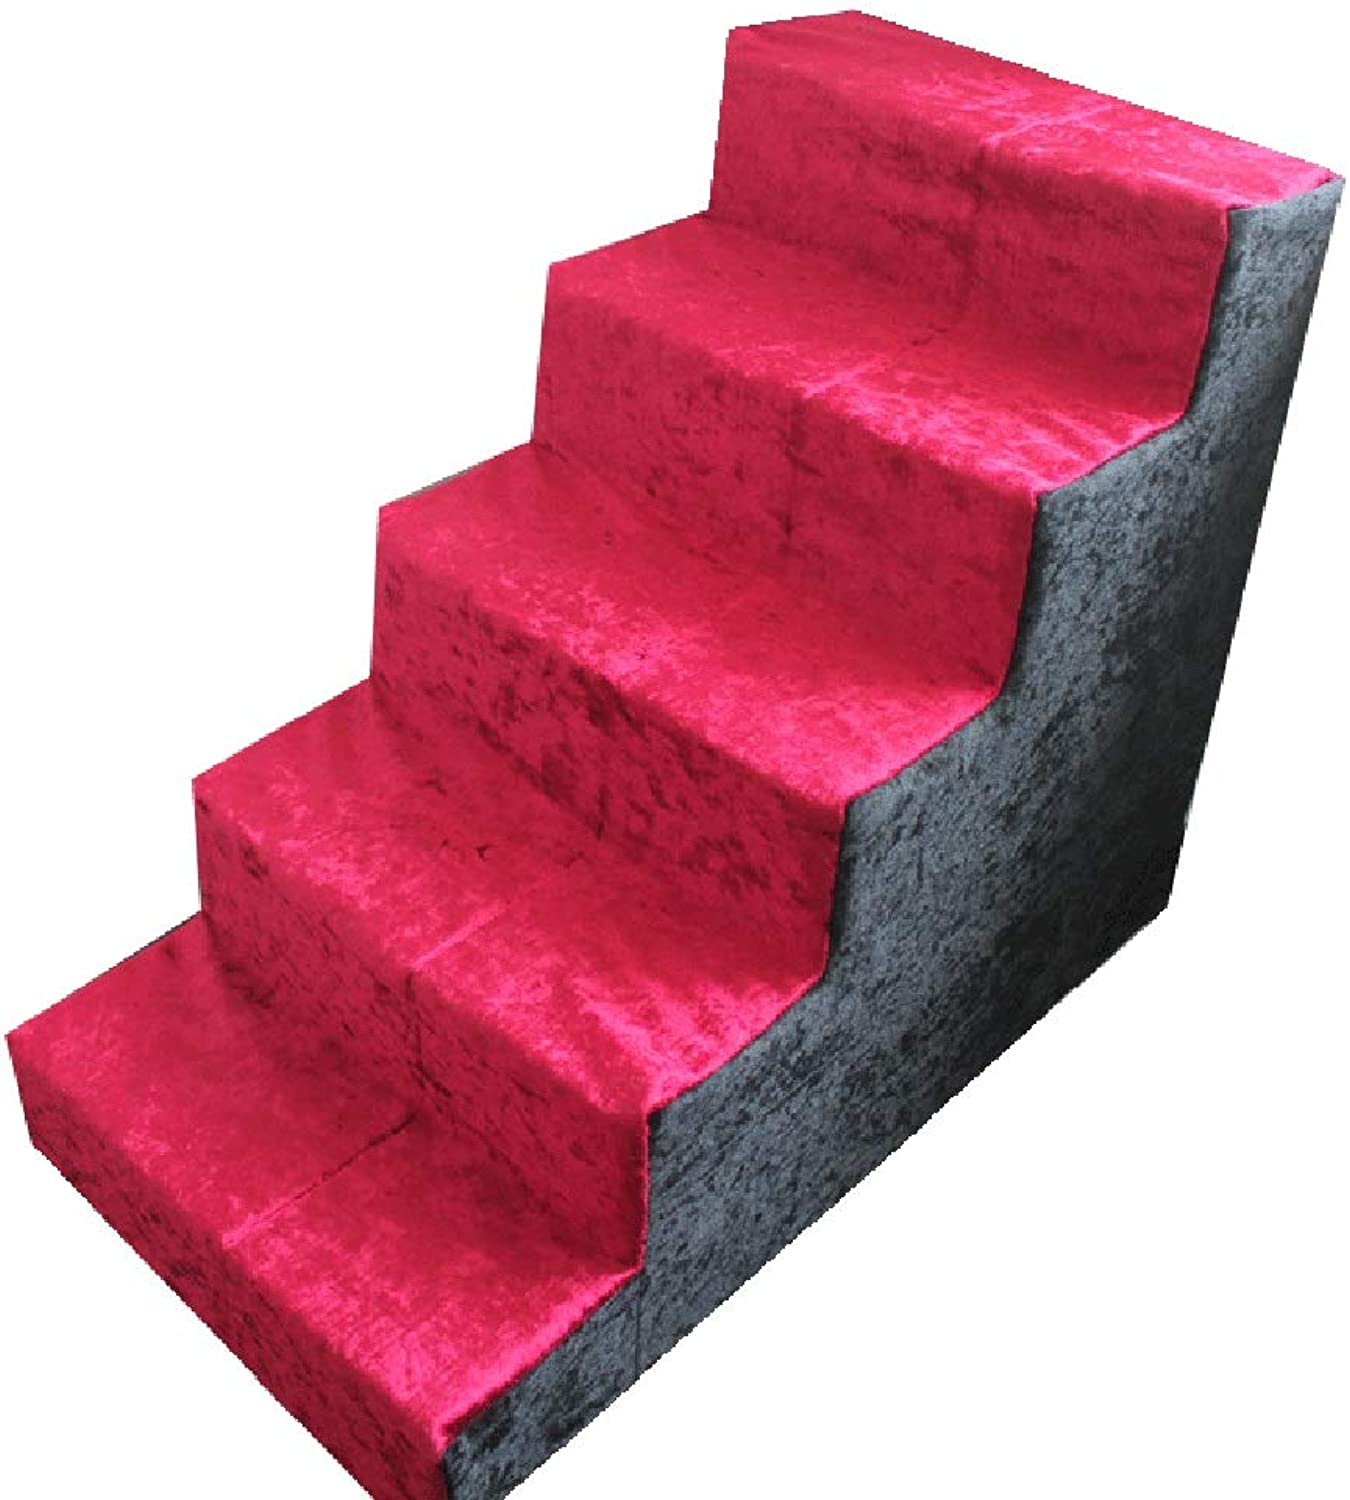 LJL Pet climbing stairs 5 step pet step cat dog small aged animal easy to climb stairs ladder aid creative pet stair